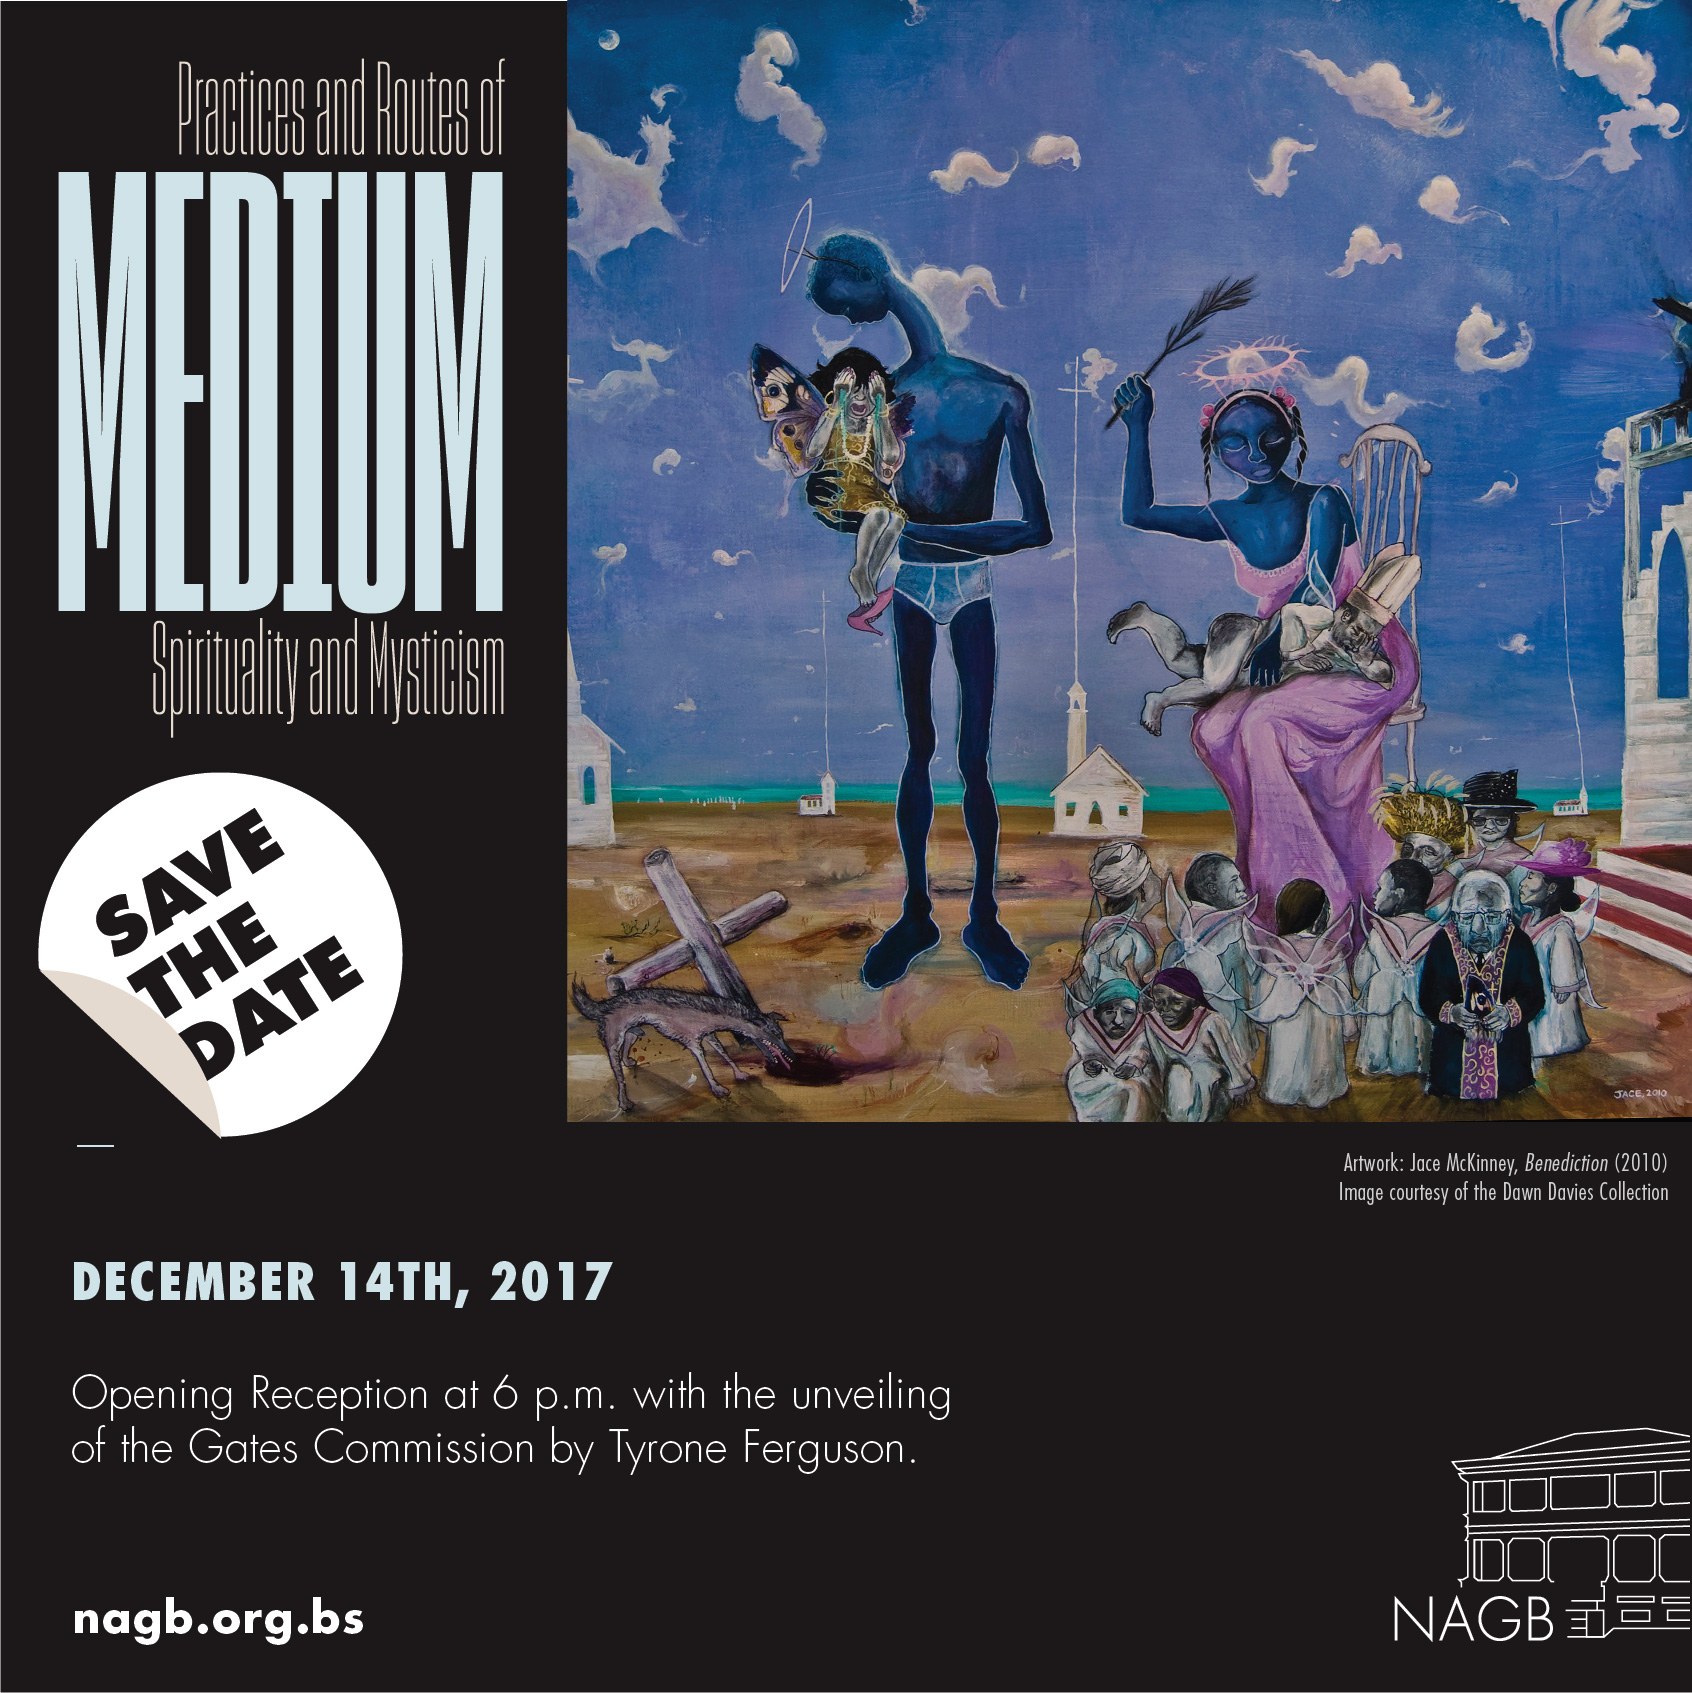 Medium opens on December 14th at the NAGB.